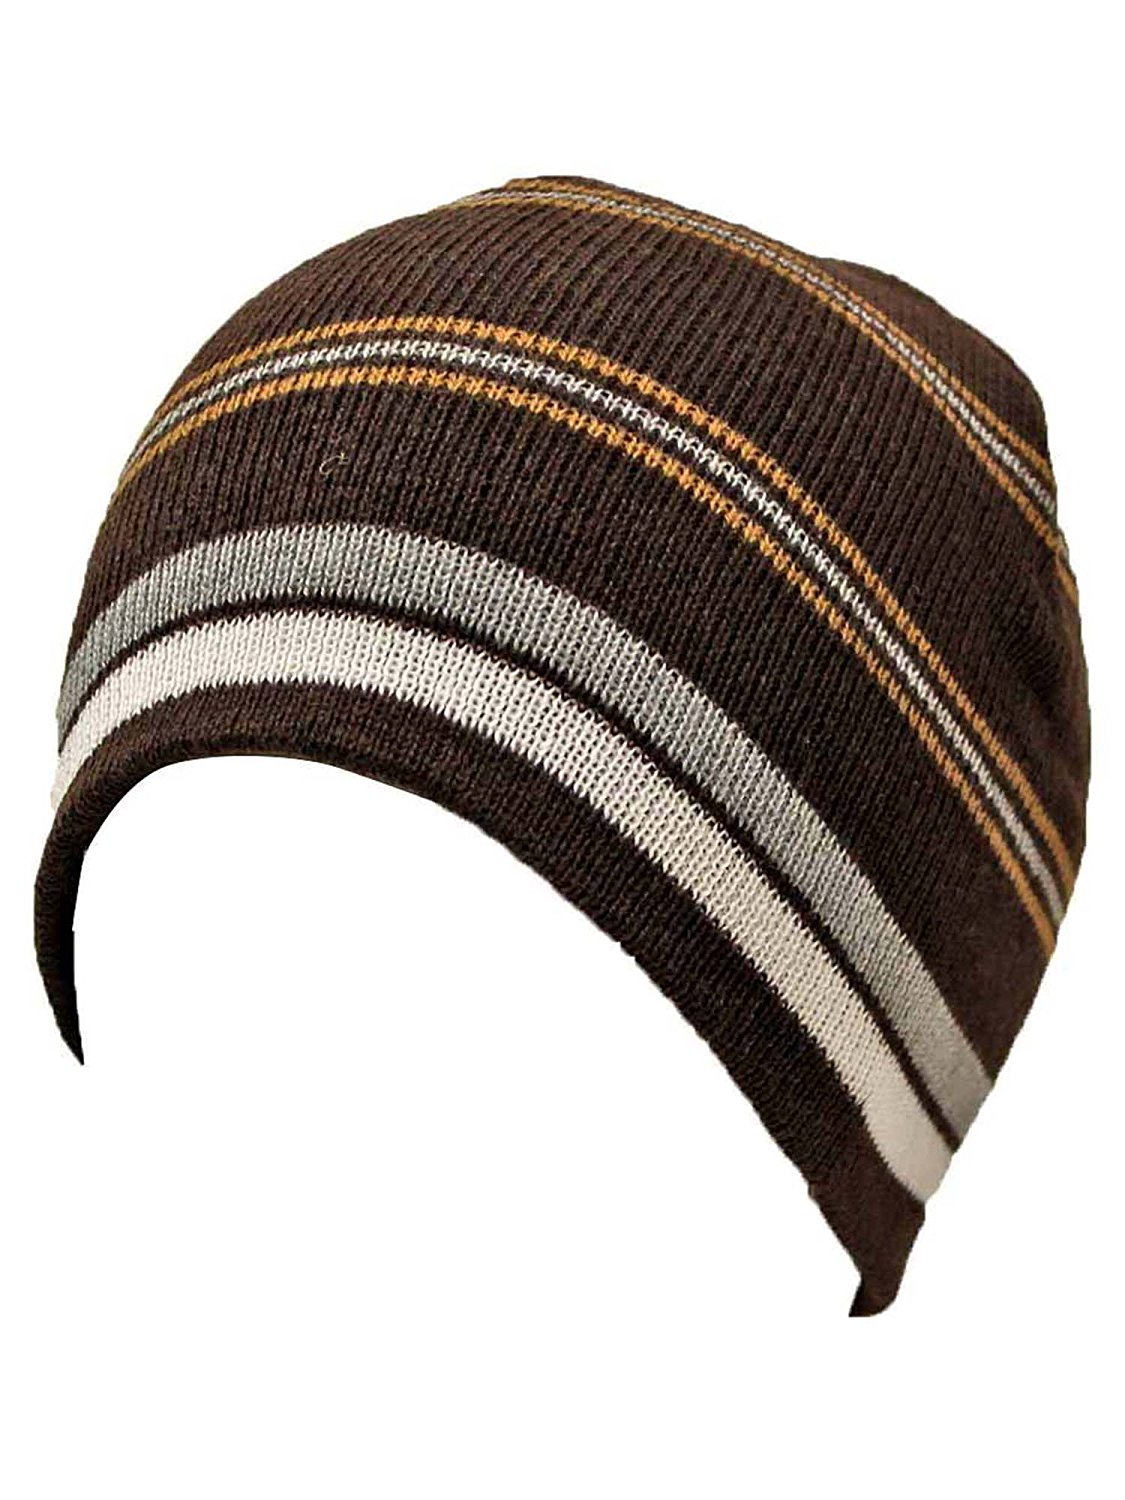 6ff104caaa78c Get Quotations · Luxury Divas Striped Tight Fitting Beanie Cap Hat